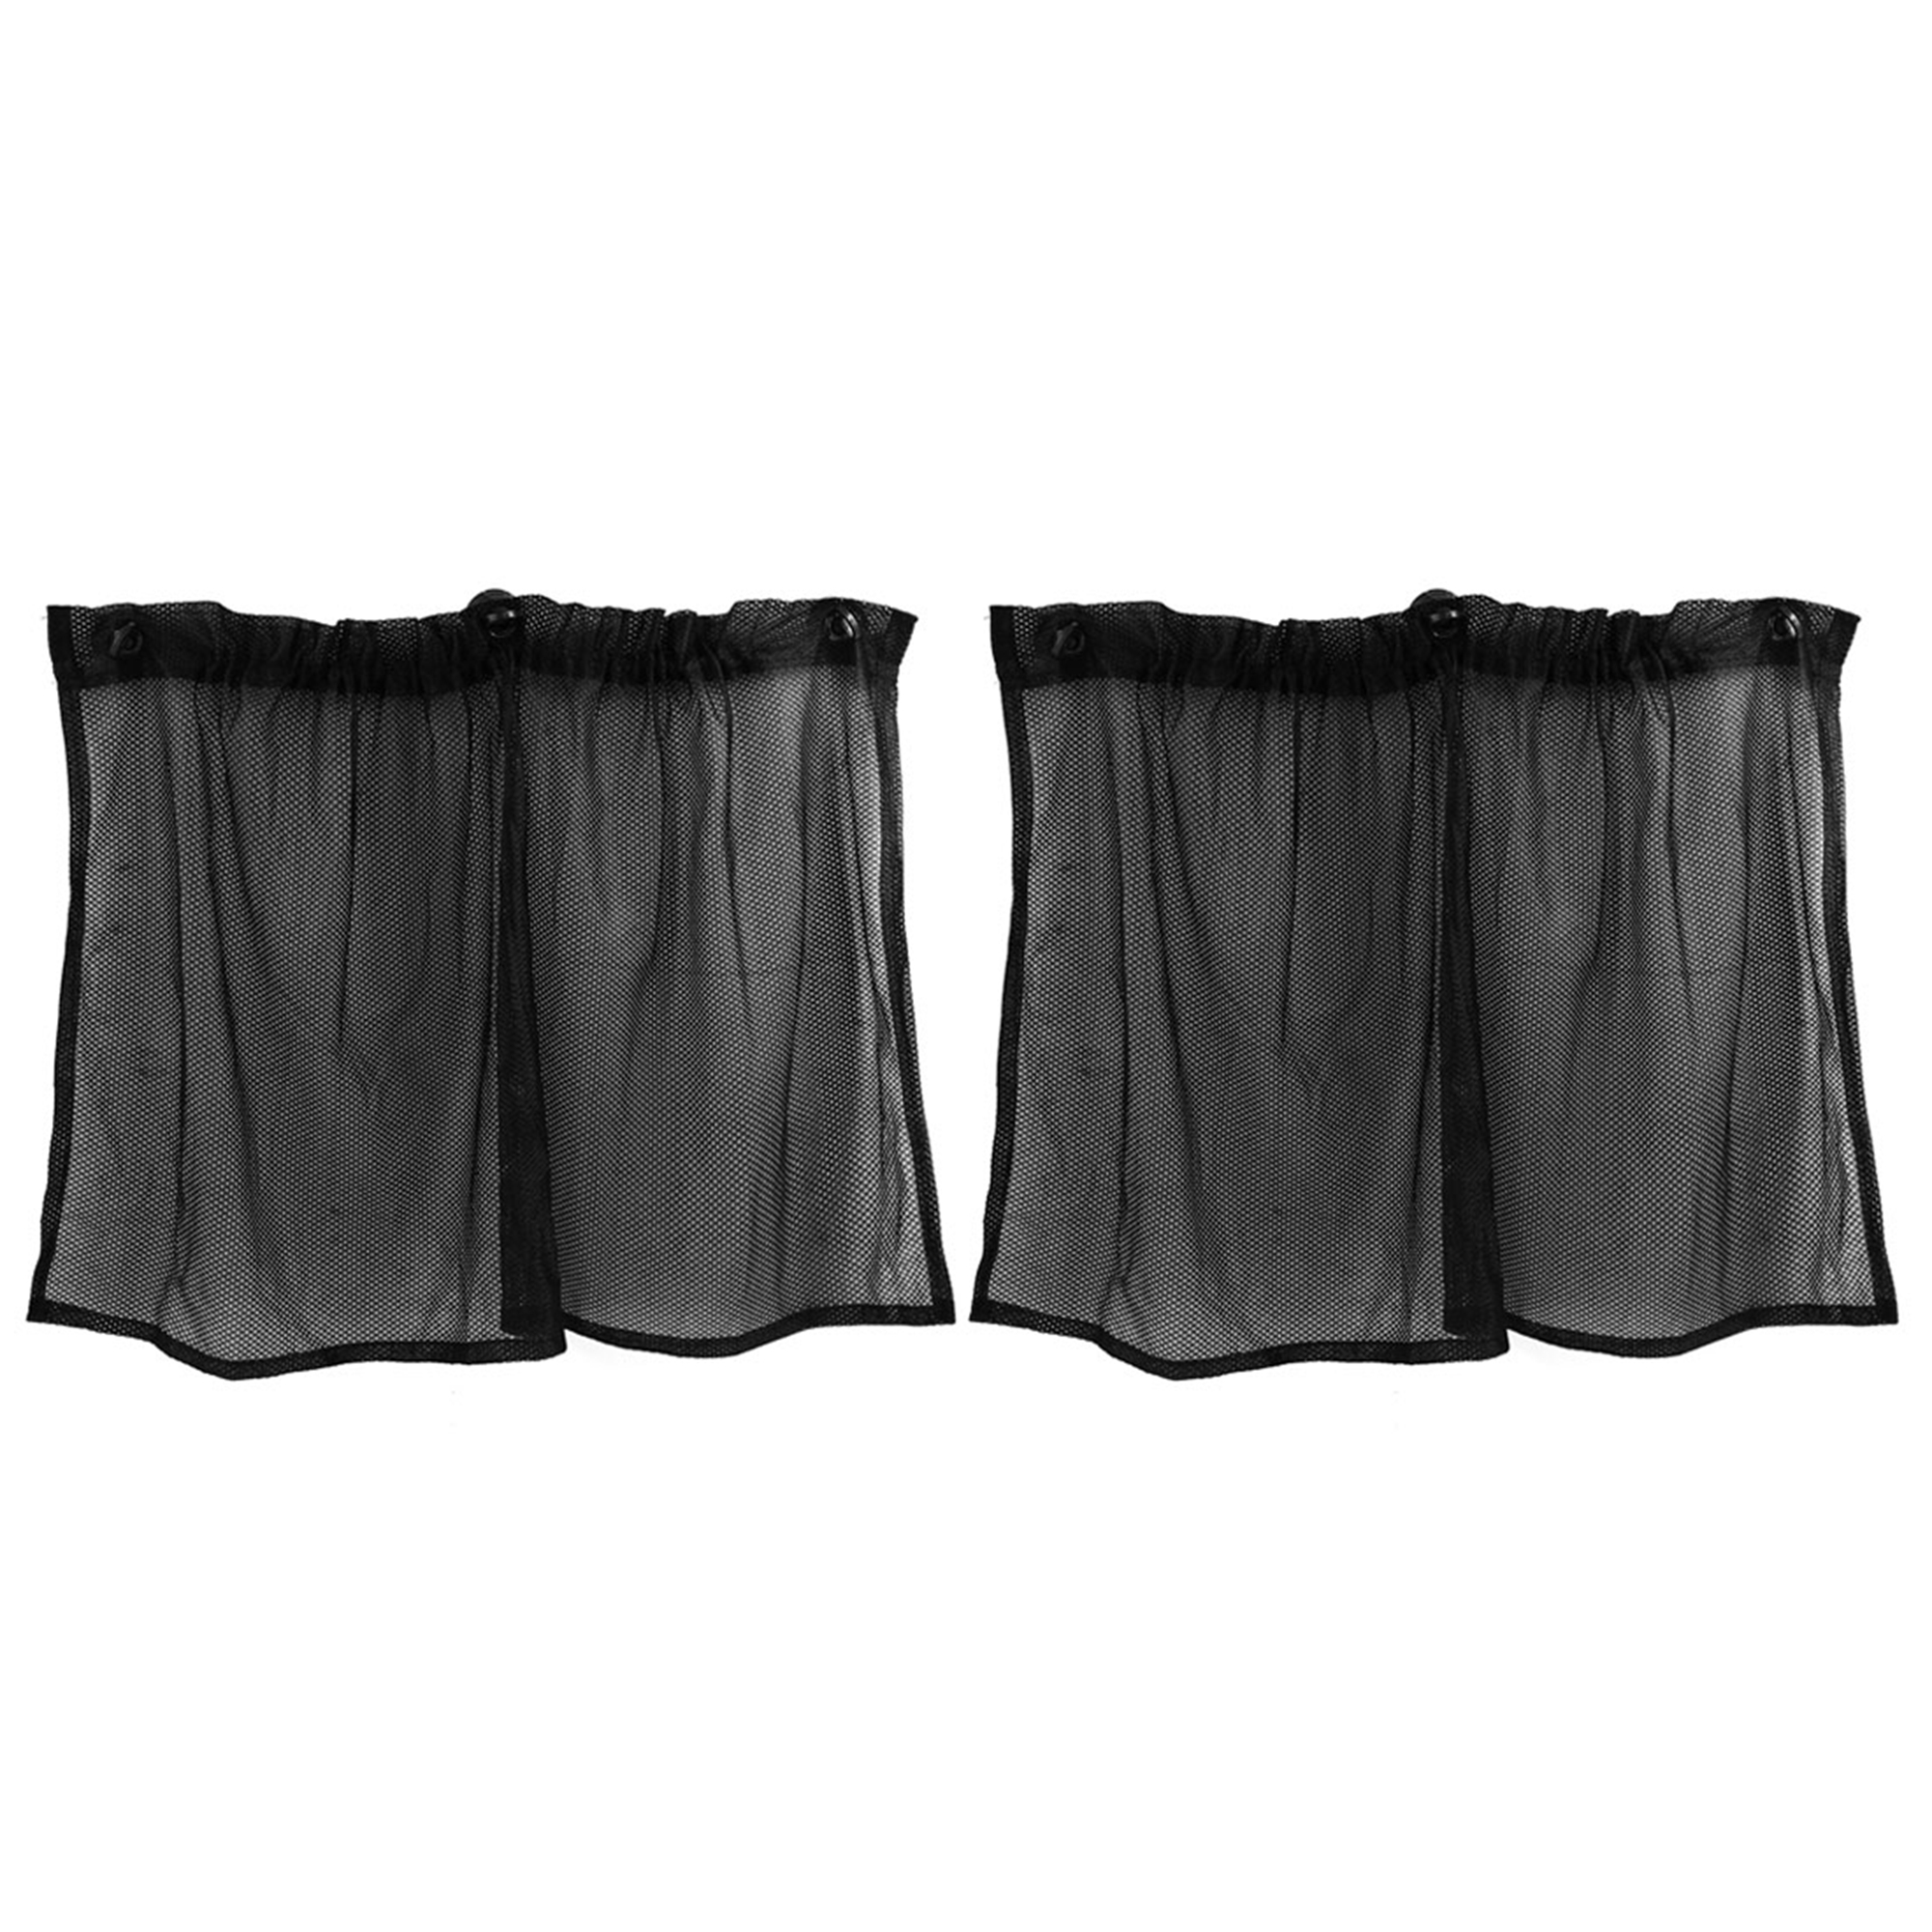 2 Pcs Black Nylon Auto Car Side Window Curtain Mesh Sun Shade 74.5cm x 39.5cm w Suction Cups